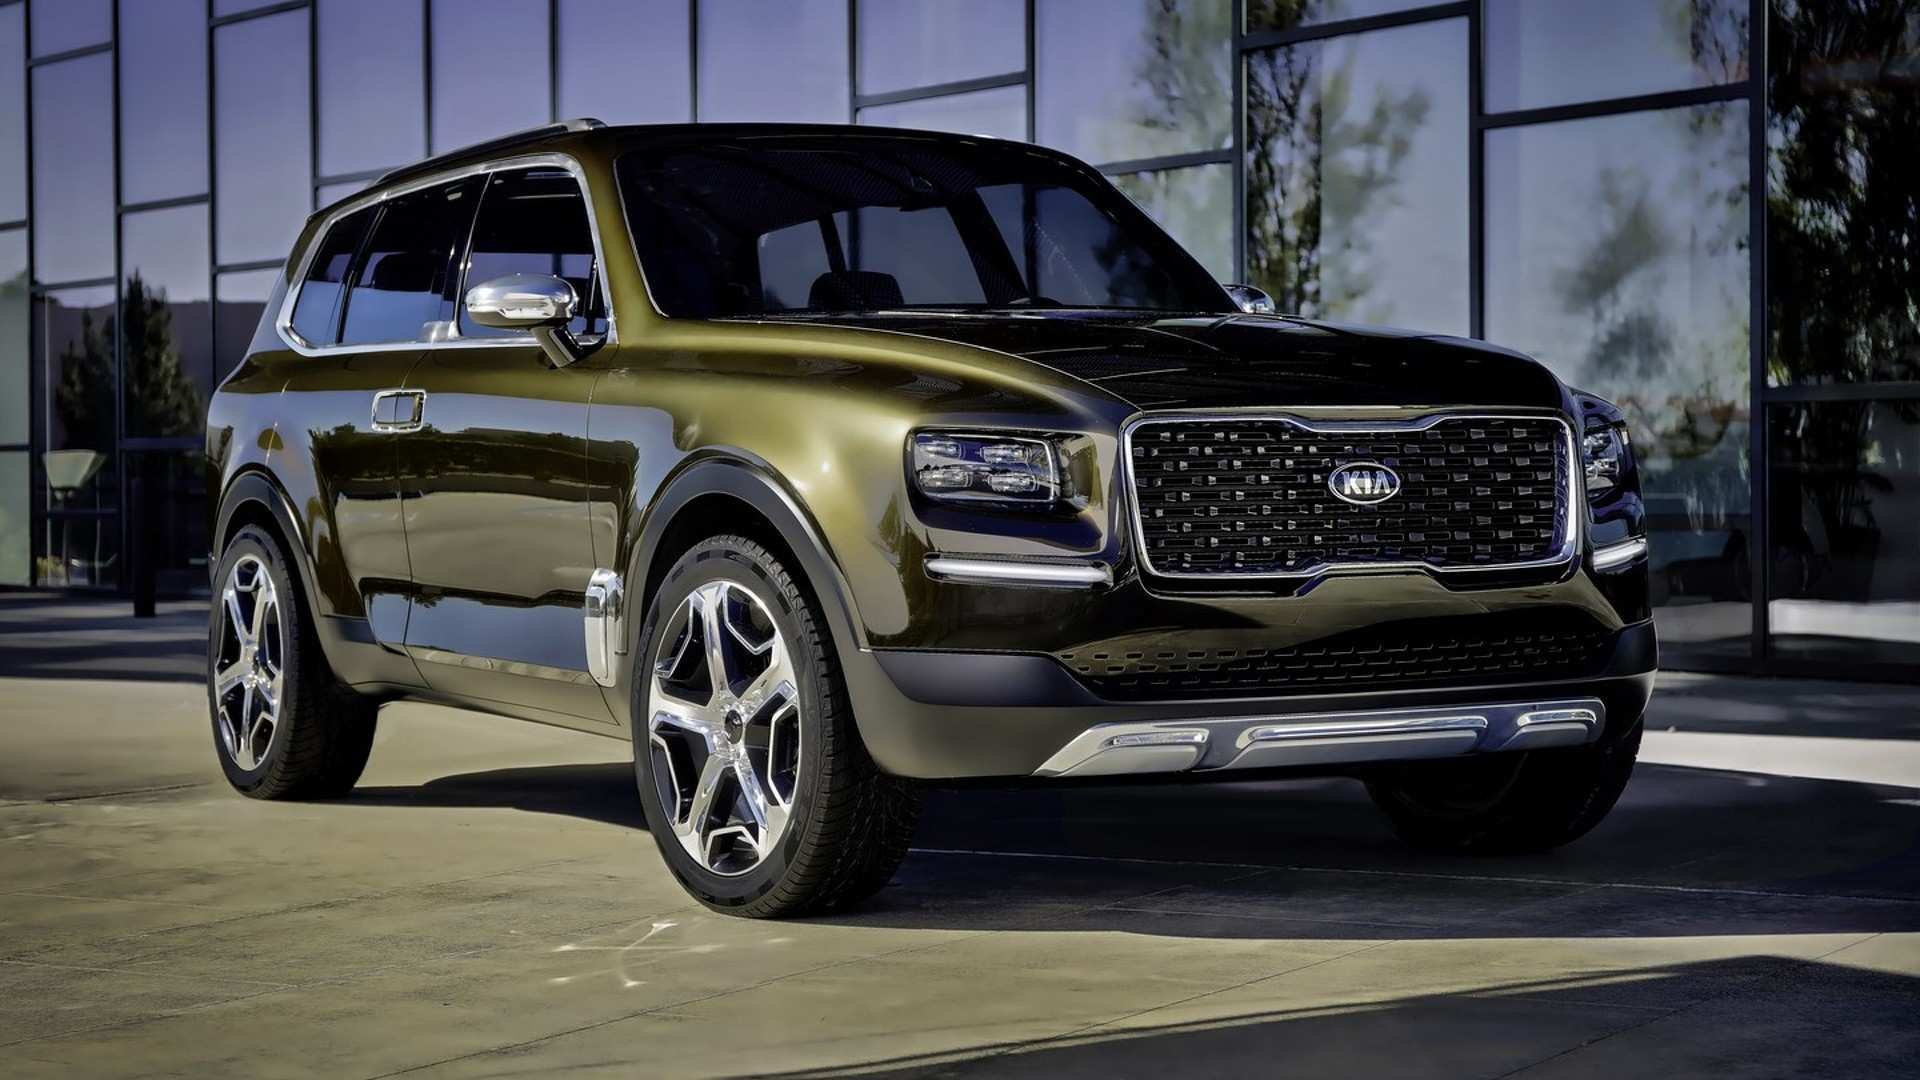 62 All New Kia Large Suv 2020 First Drive